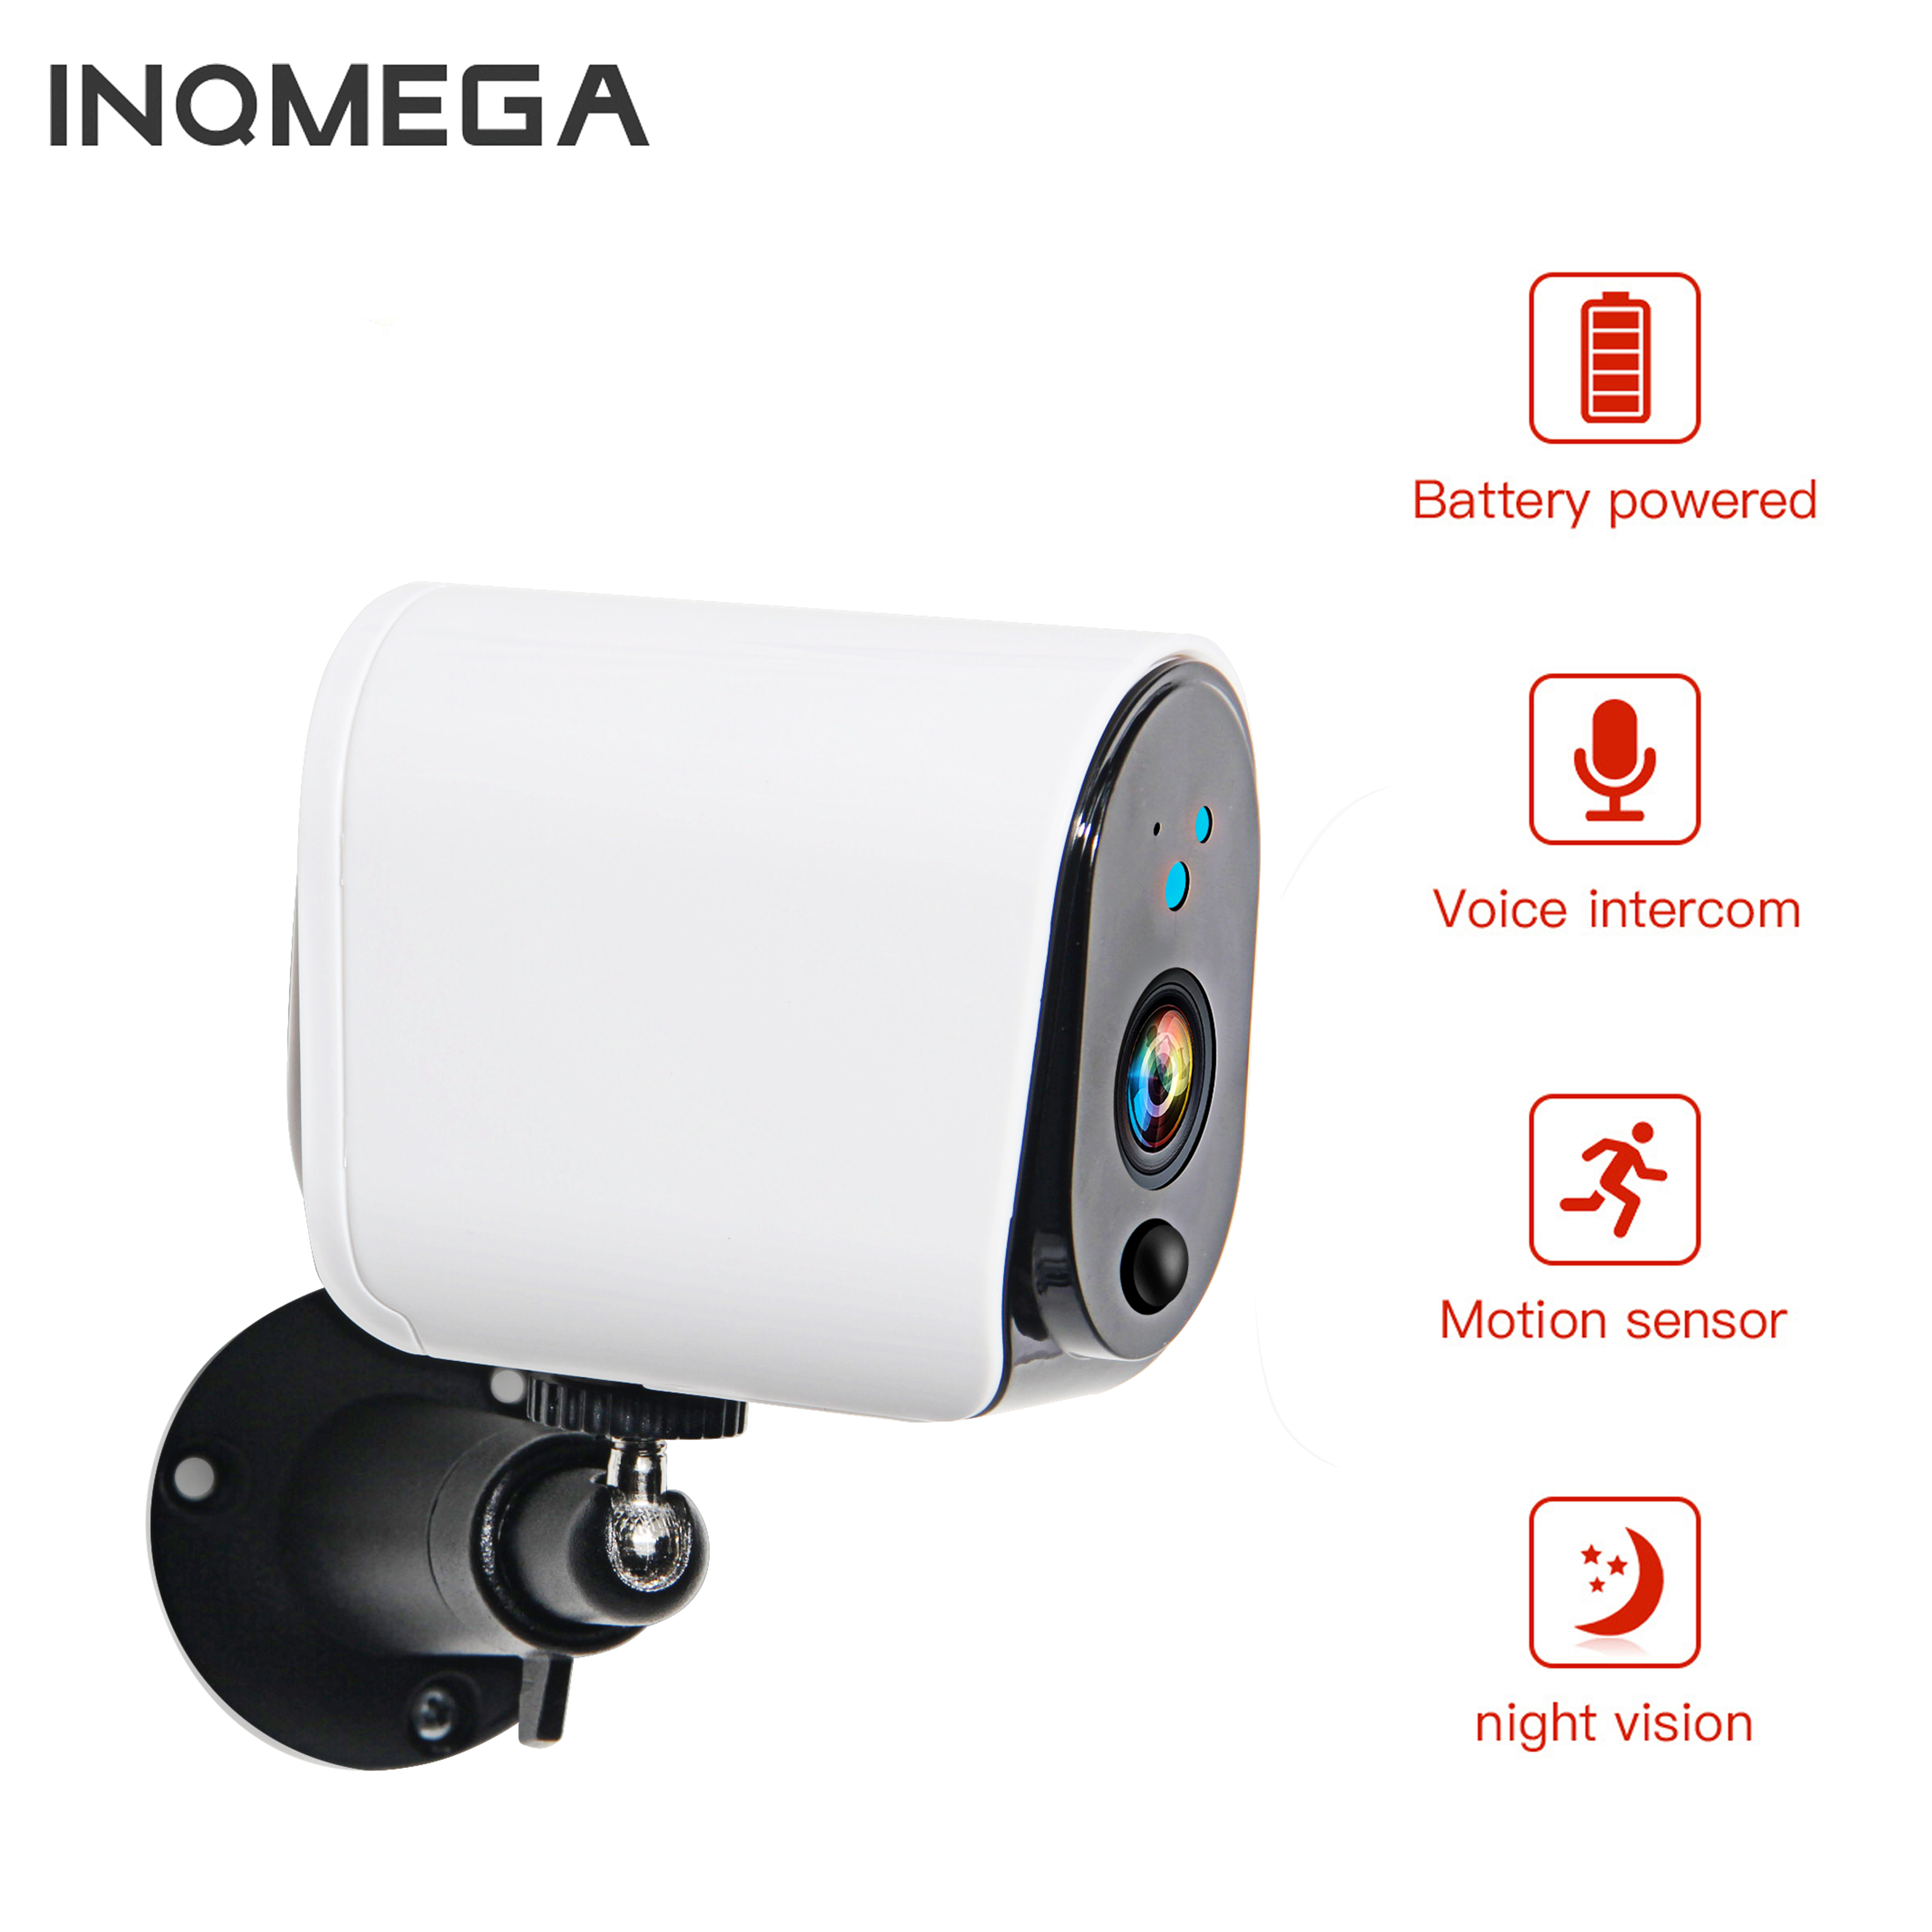 INQMEGA 100% Draht-Freies Outdoor Ip-kamera 1080P Drahtlose Überwachungs Kamera Home Security IP65 Wasserdichte Batterie WiFi IP kamera